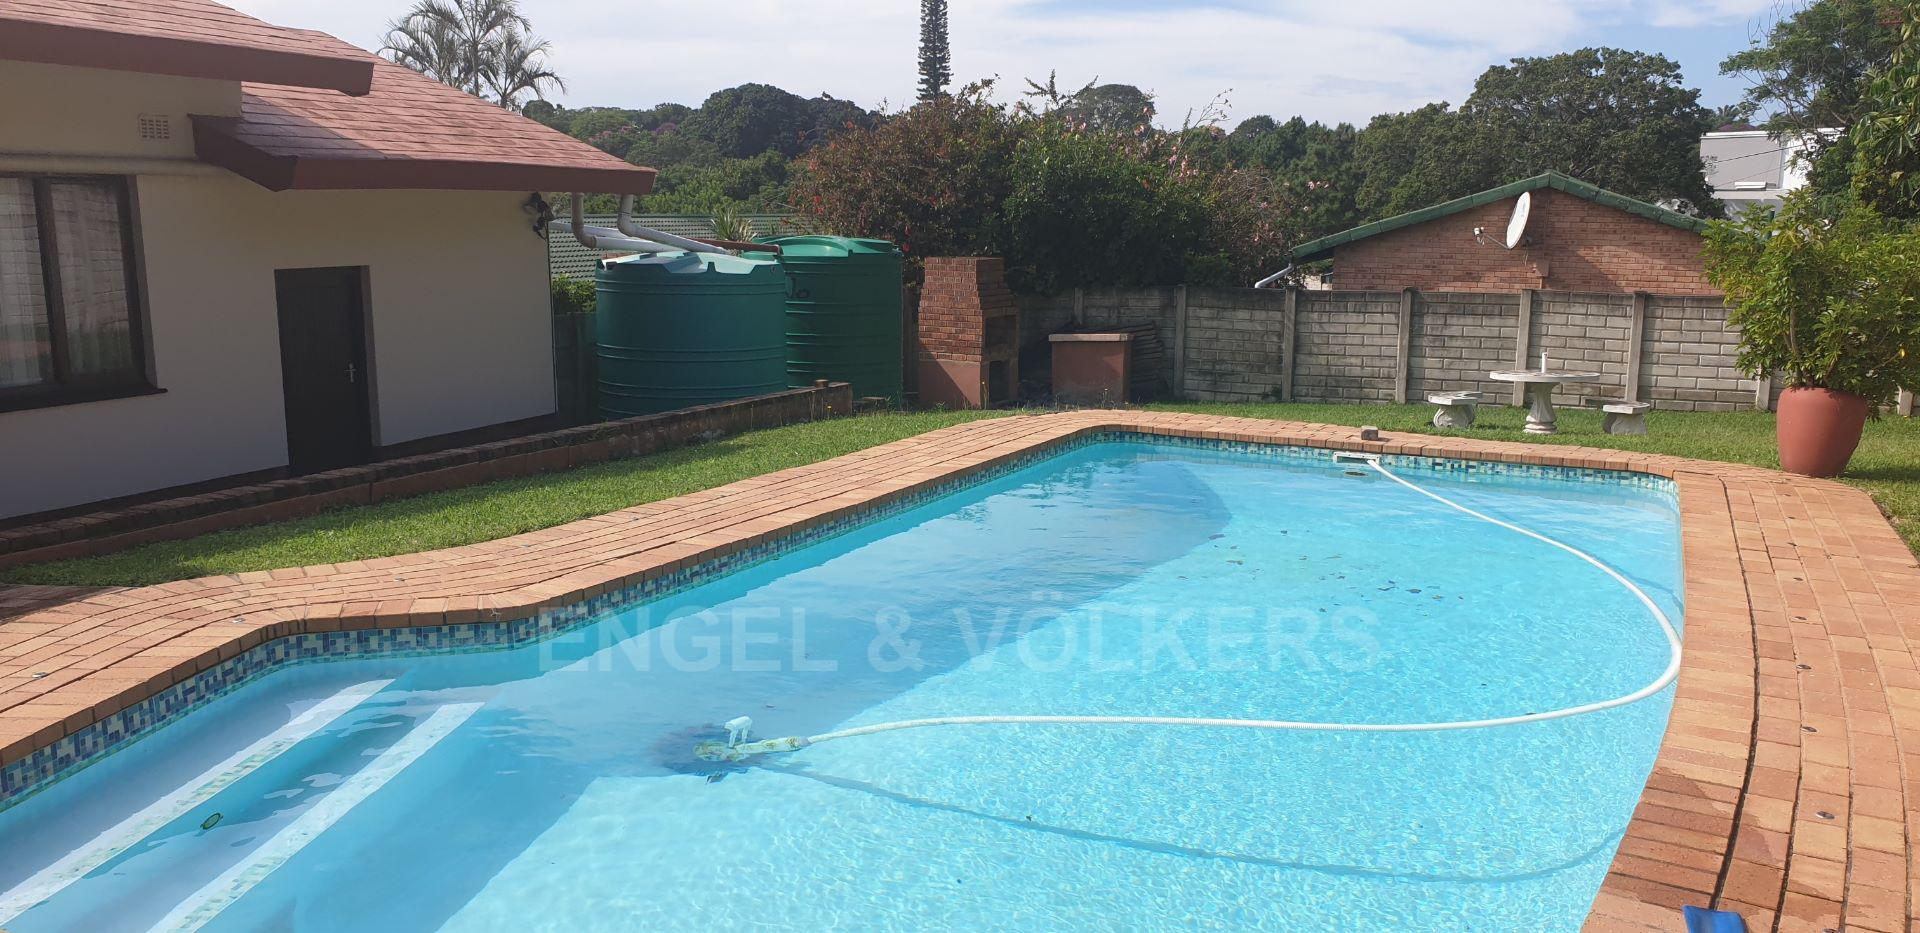 House in Uvongo - 019 - Pool area.jpg